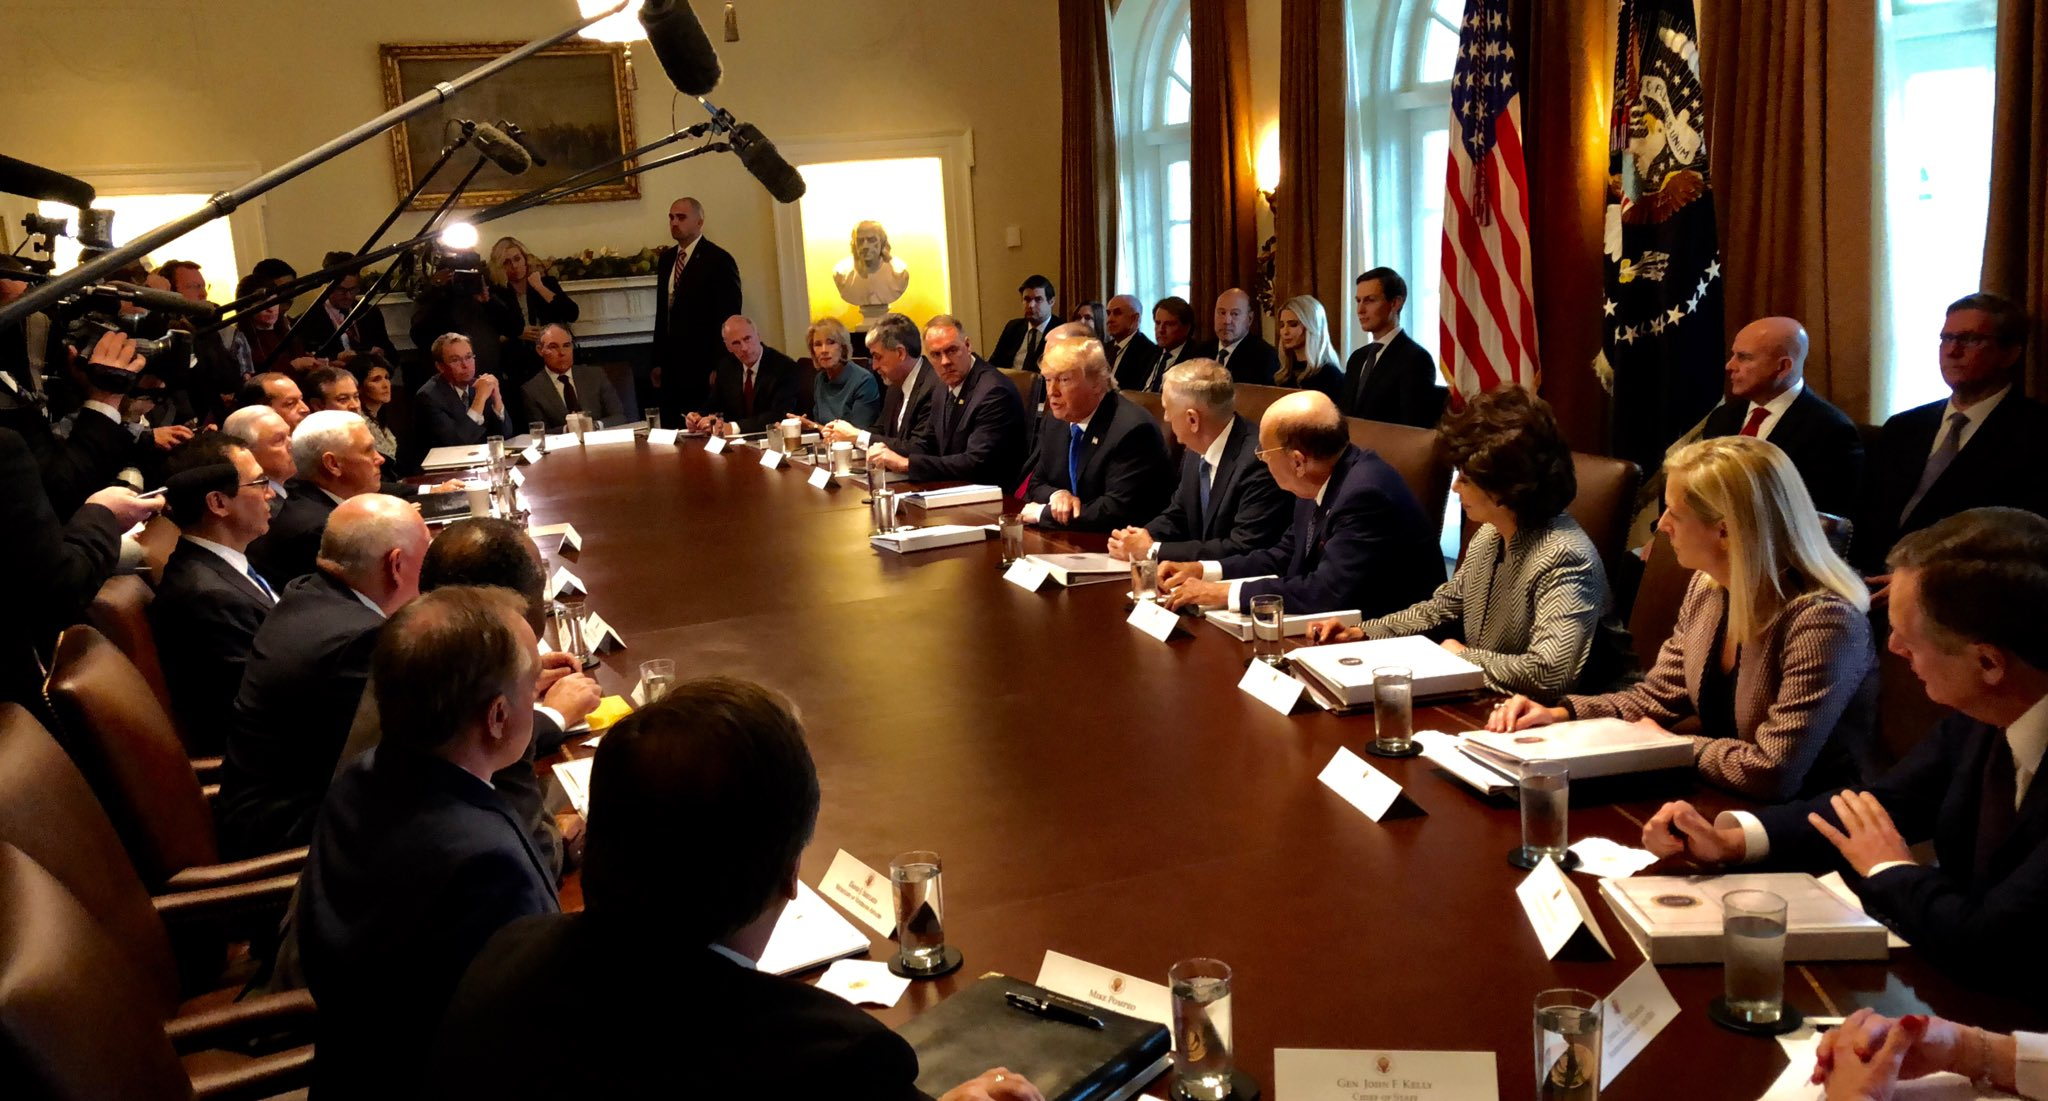 President @realDonaldTrump @Cabinet Meeting underway at the @WhiteHouse. https://t.co/zAOSFYt7wP